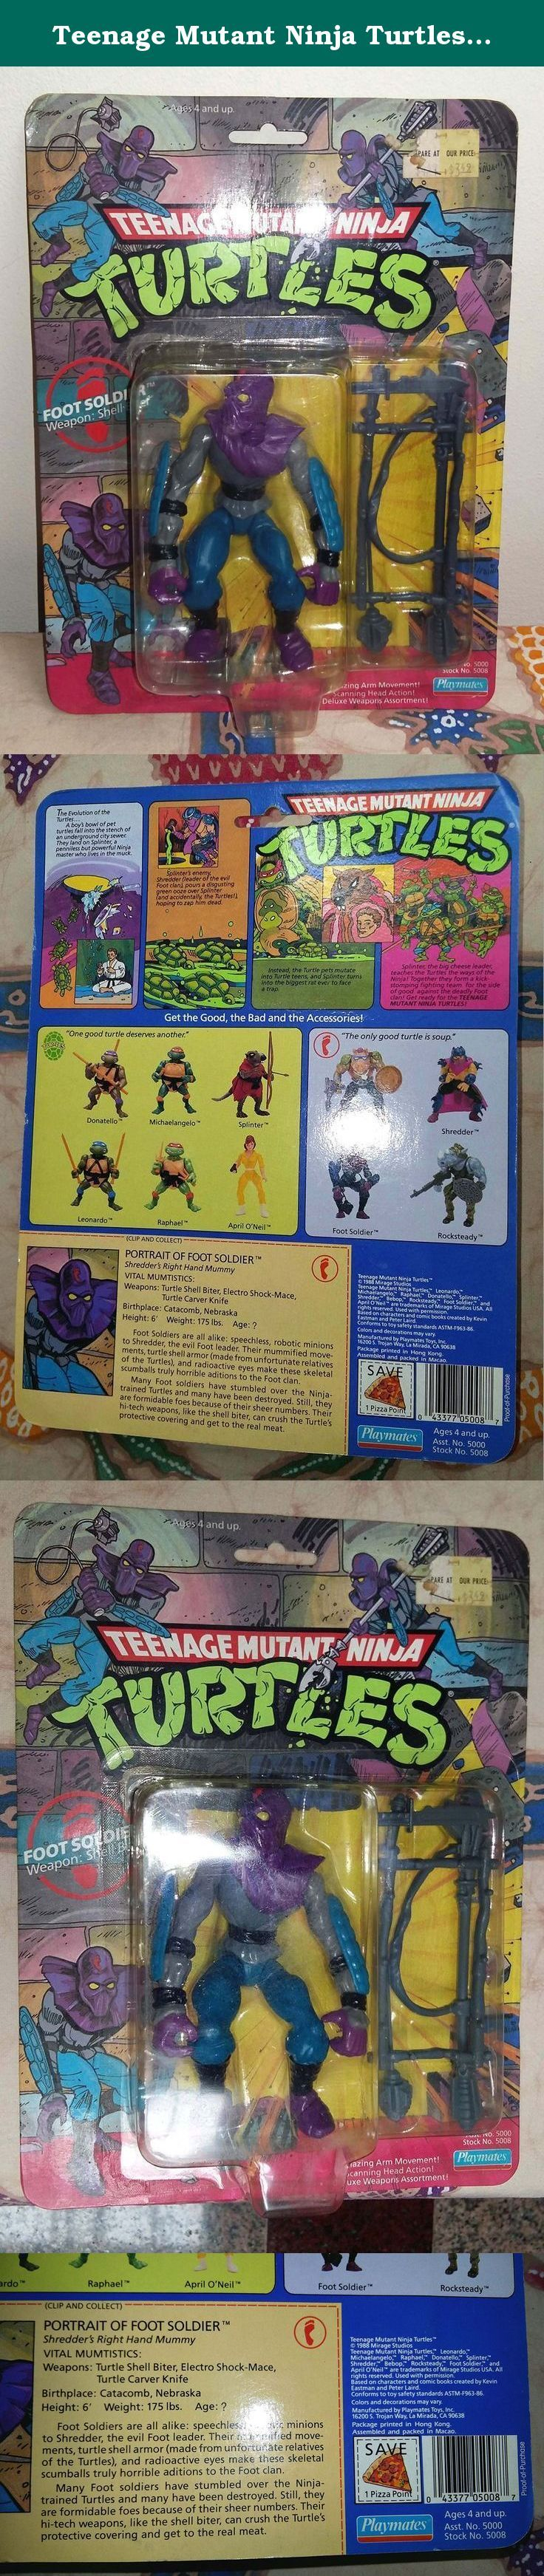 Teenage Mutant Ninja Turtles Foot Soldier Action Figure. Foot Soldier. TMNT figure. Weapon: Shell Biter. Made in 1990.